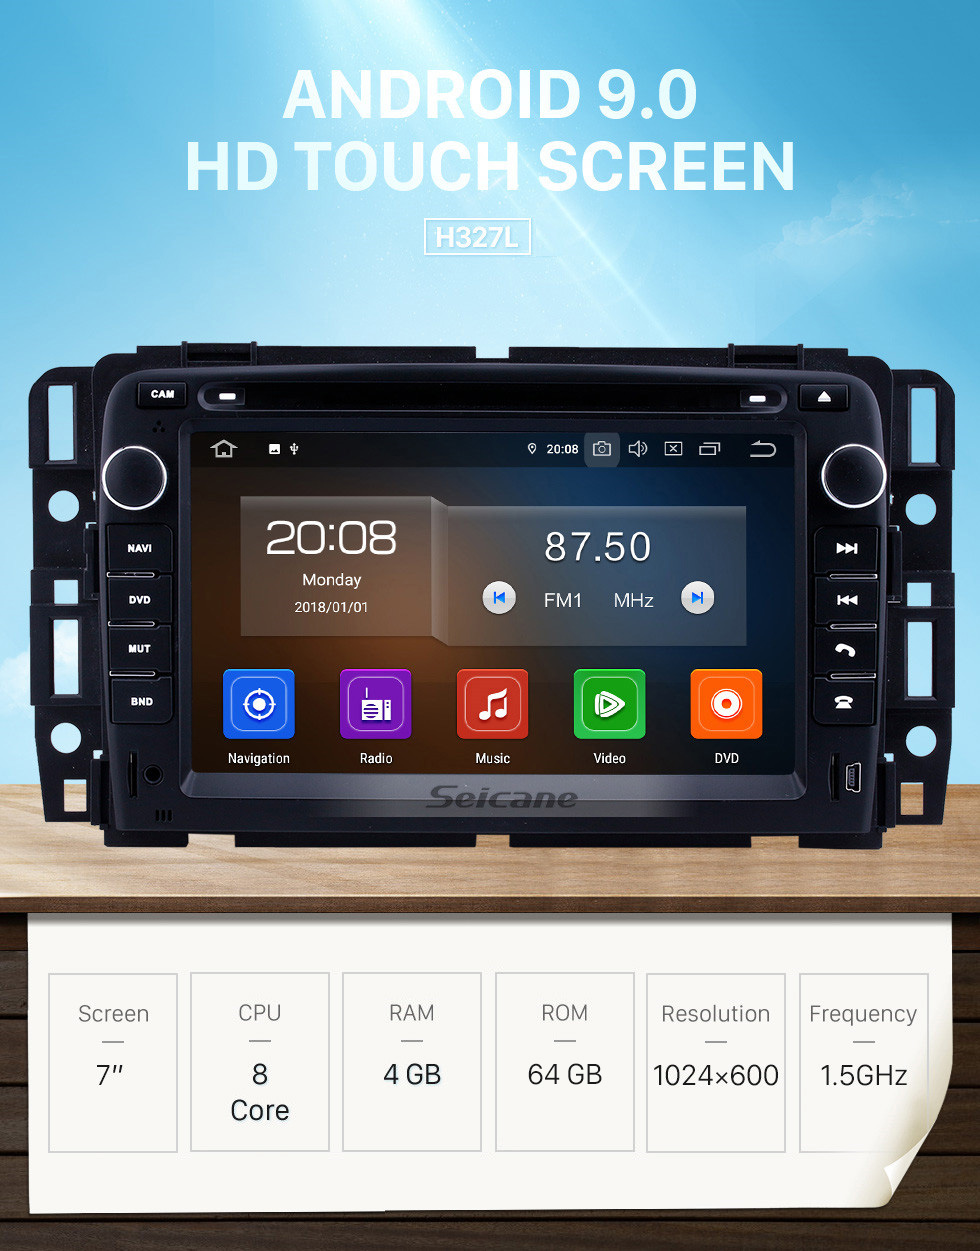 Seicane 7 inch For 2007 2008 2009-2012 General GMC Yukon/Chevy Chevrolet Tahoe/Buick Enclave/Hummer H2 Radio Android 9.0 GPS Navigation System Bluetooth HD Touchscreen Carplay support DAB+